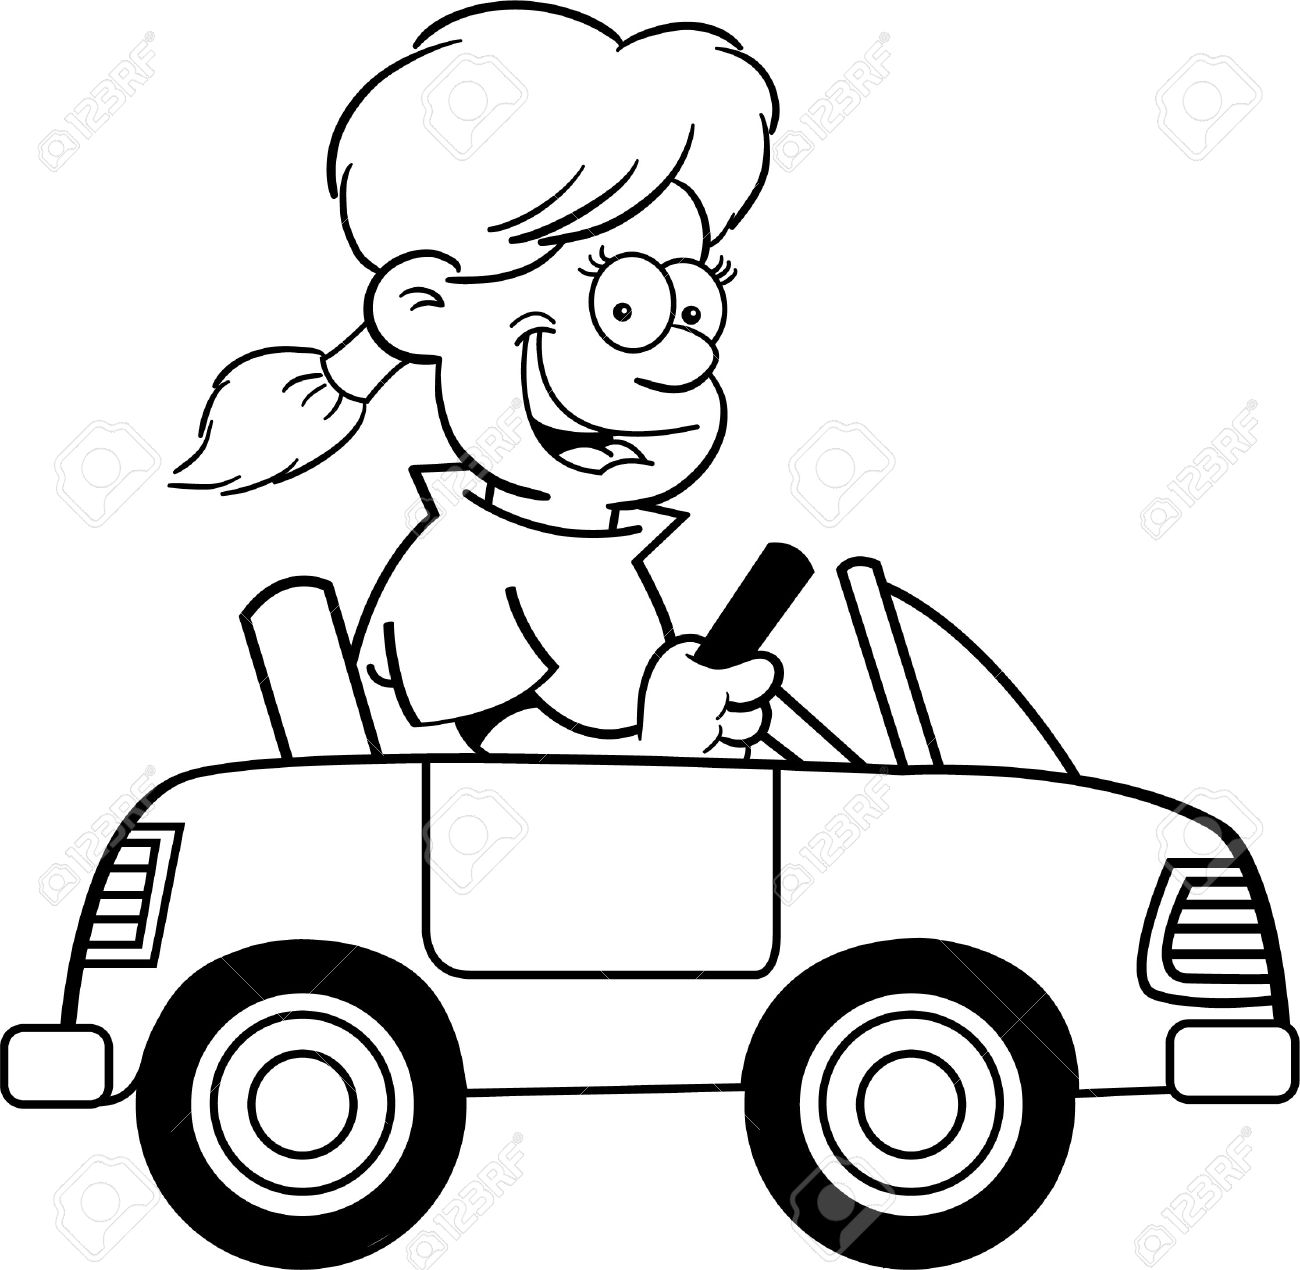 1300x1270 Black And White Illustration Of A Girl Driving A Toy Car Royalty